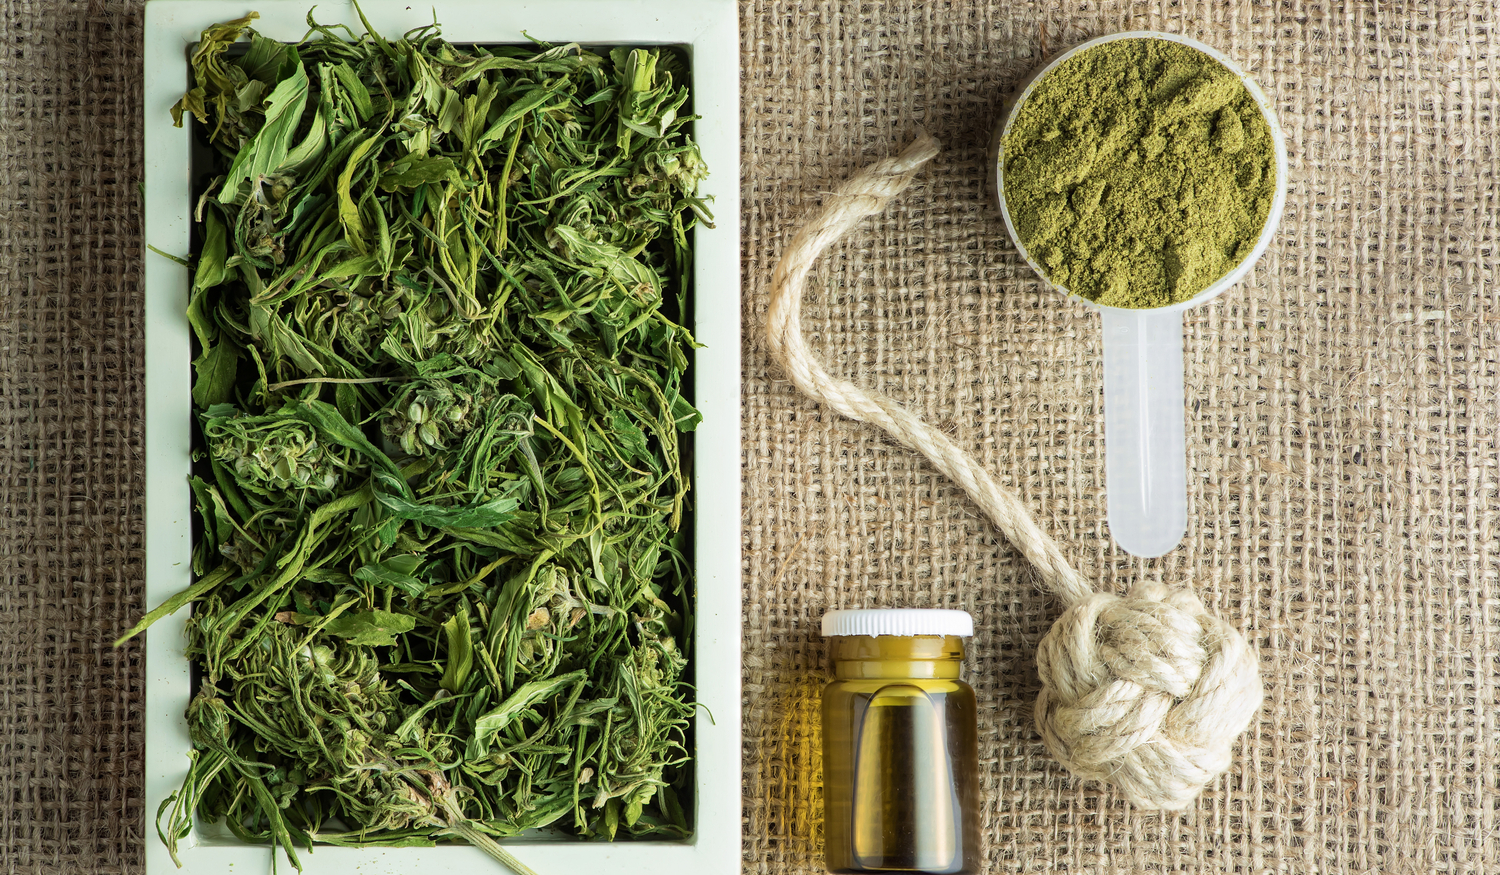 Industrial Hemp products on a table